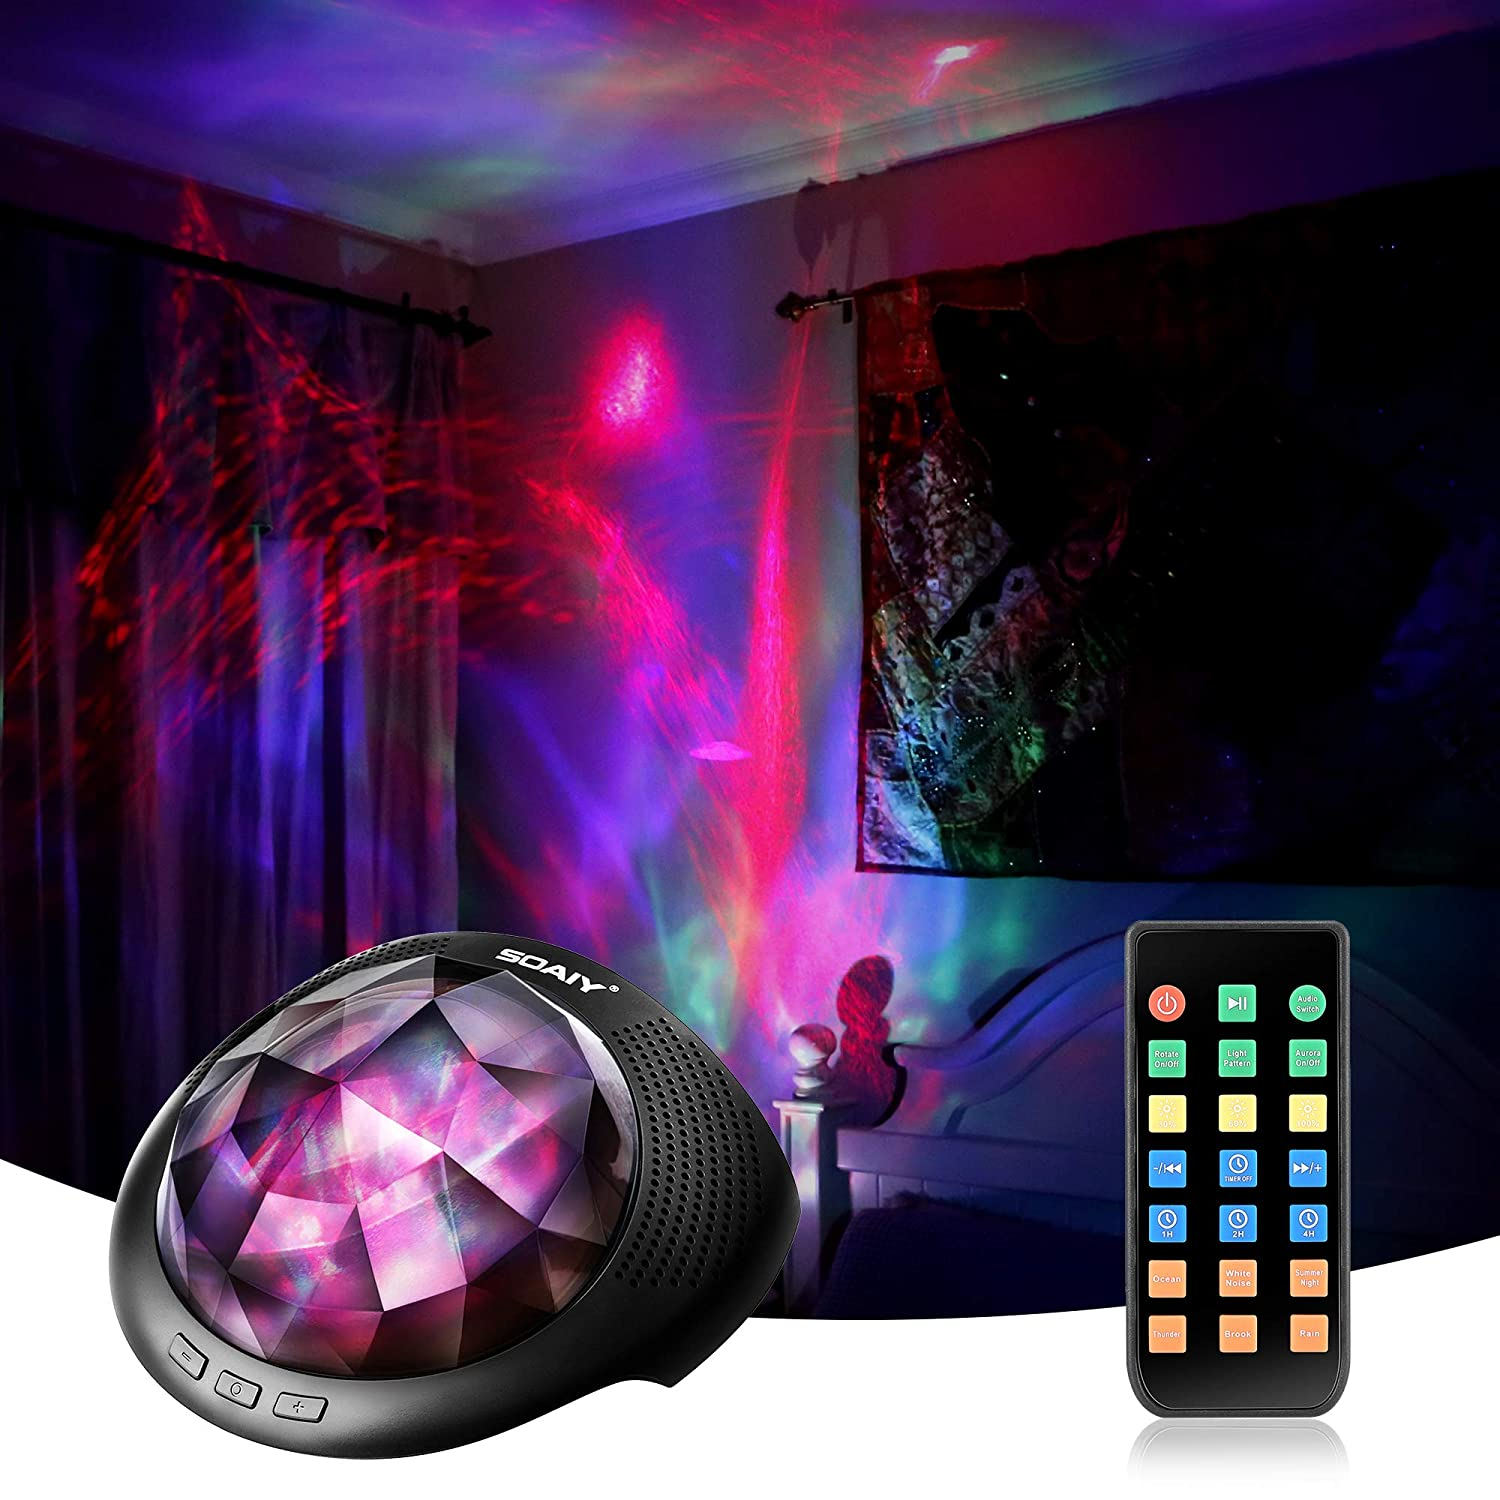 Soaiy Aurora/Northern Light Projector with White Noise Sound Machine, Bluetooth Speaker/Timer/Remote, LED Moving Aurora Bedroom Ceiling Projector Light for Adults, Baby, Kids Sleep Relax Therapy